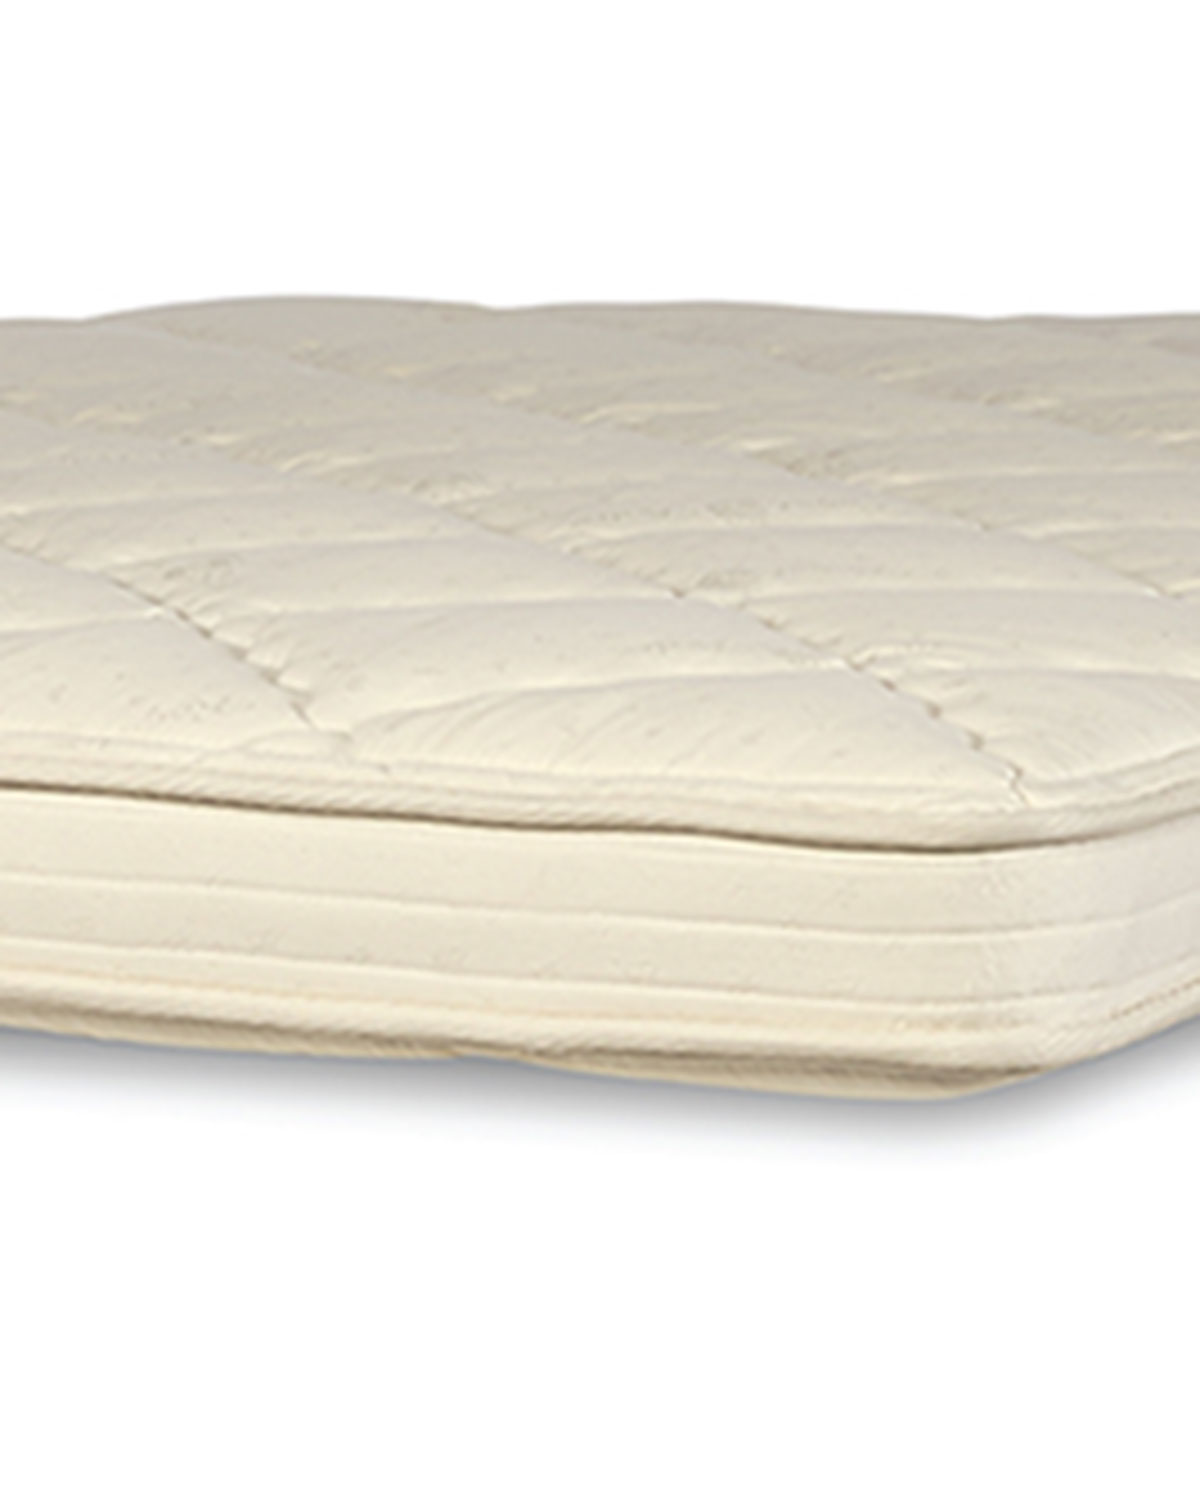 Royal-Pedic Dream Spring Deluxe Pillow Top Pad - California King